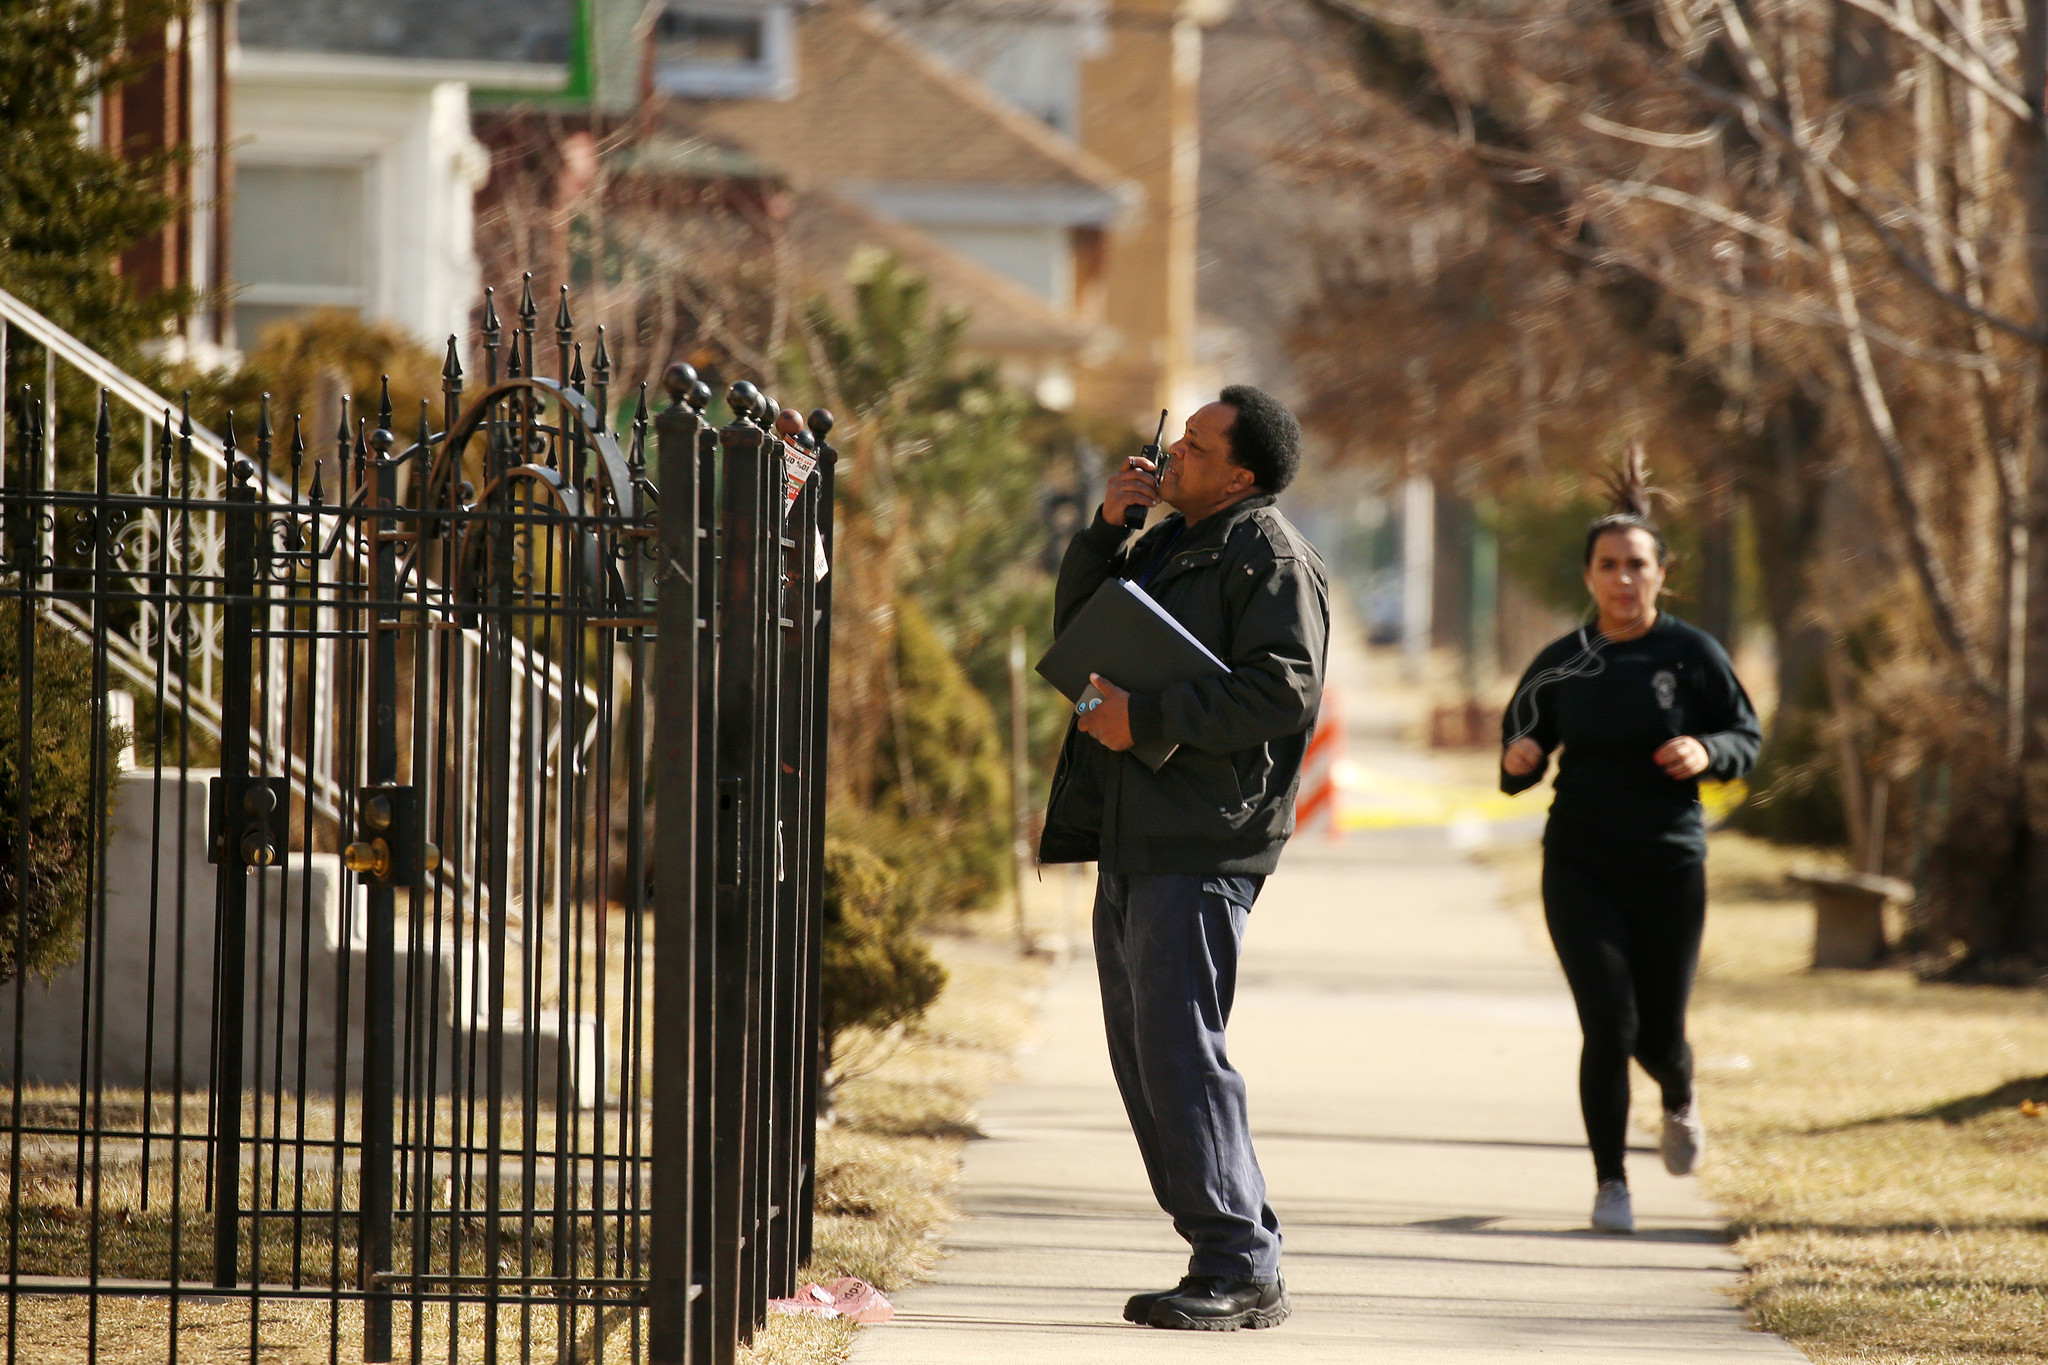 Boy, 12, shot while playing outside Gage Park home: 'This neighborhood is being attacked'